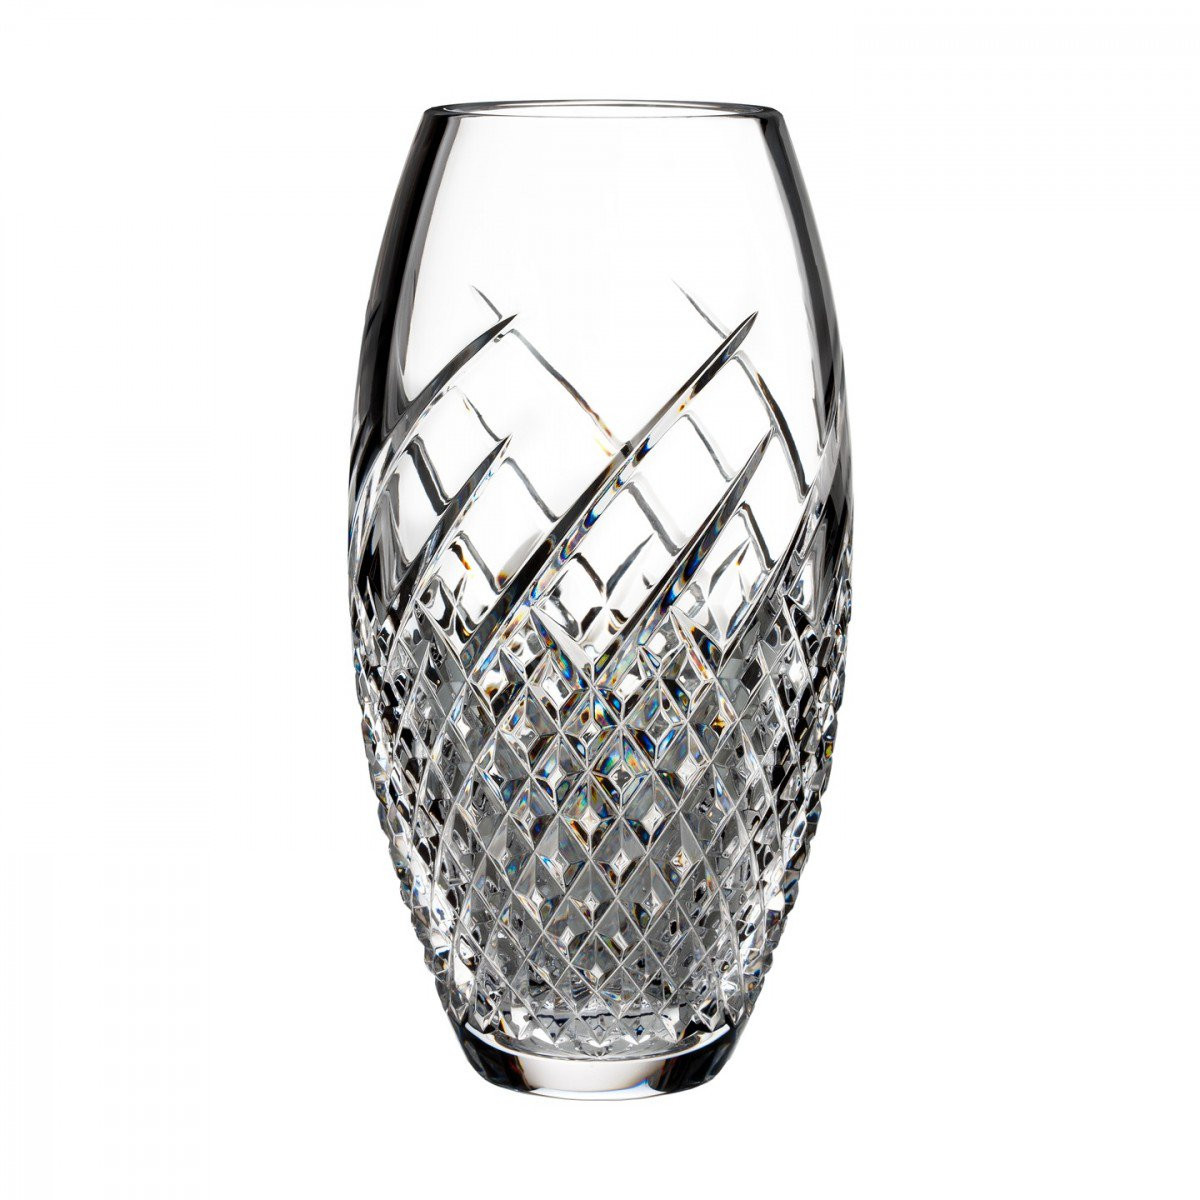 waterford maritana vase of wild atlantic way 10in vase house of waterford crystal us pertaining to wild atlantic way 10in vase